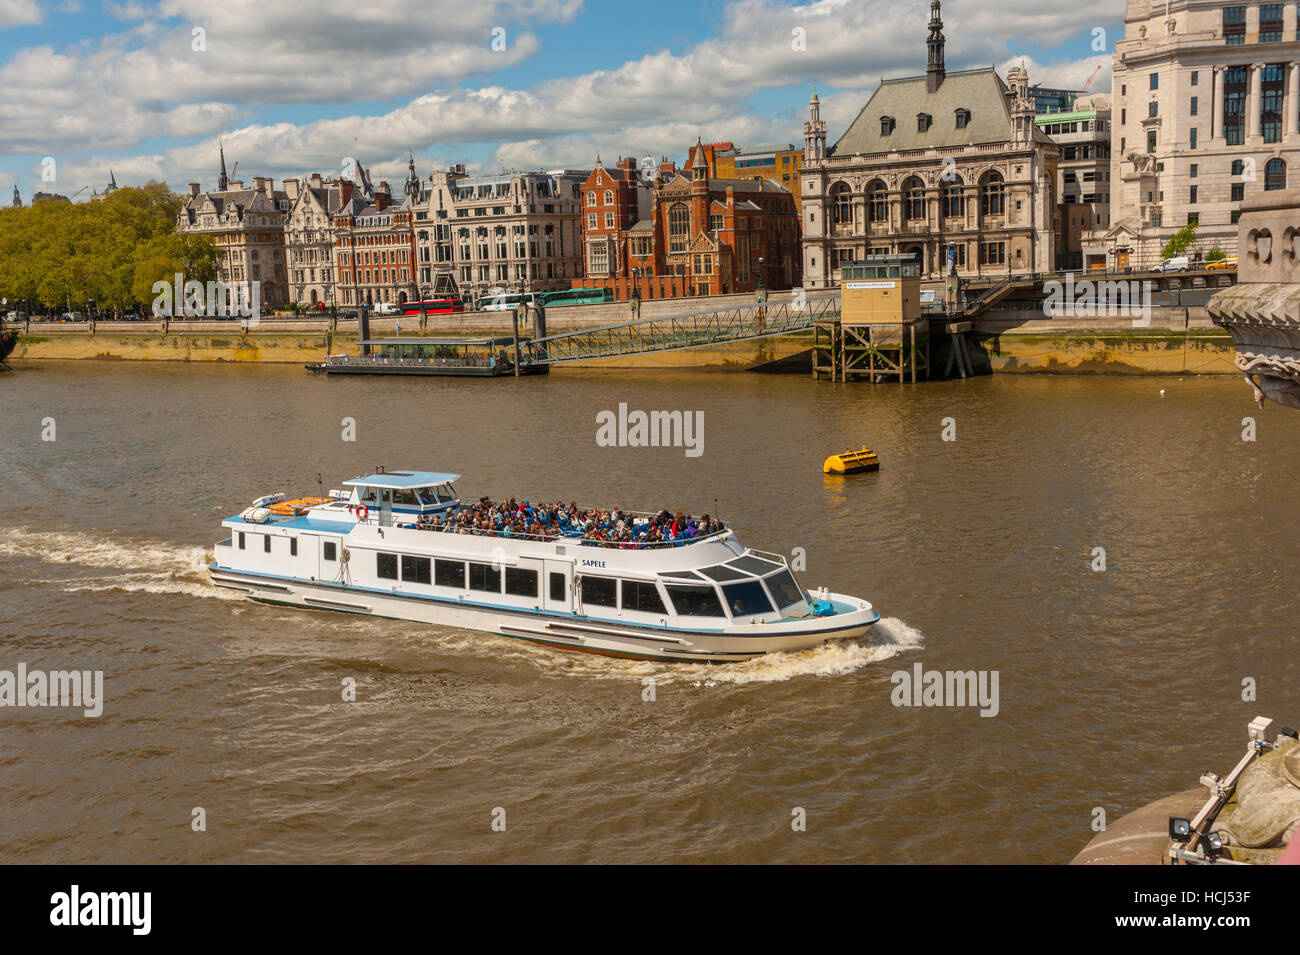 Tourist cruiser on the thames from blackfriars bridge. looking at the north bank thames. - Stock Image